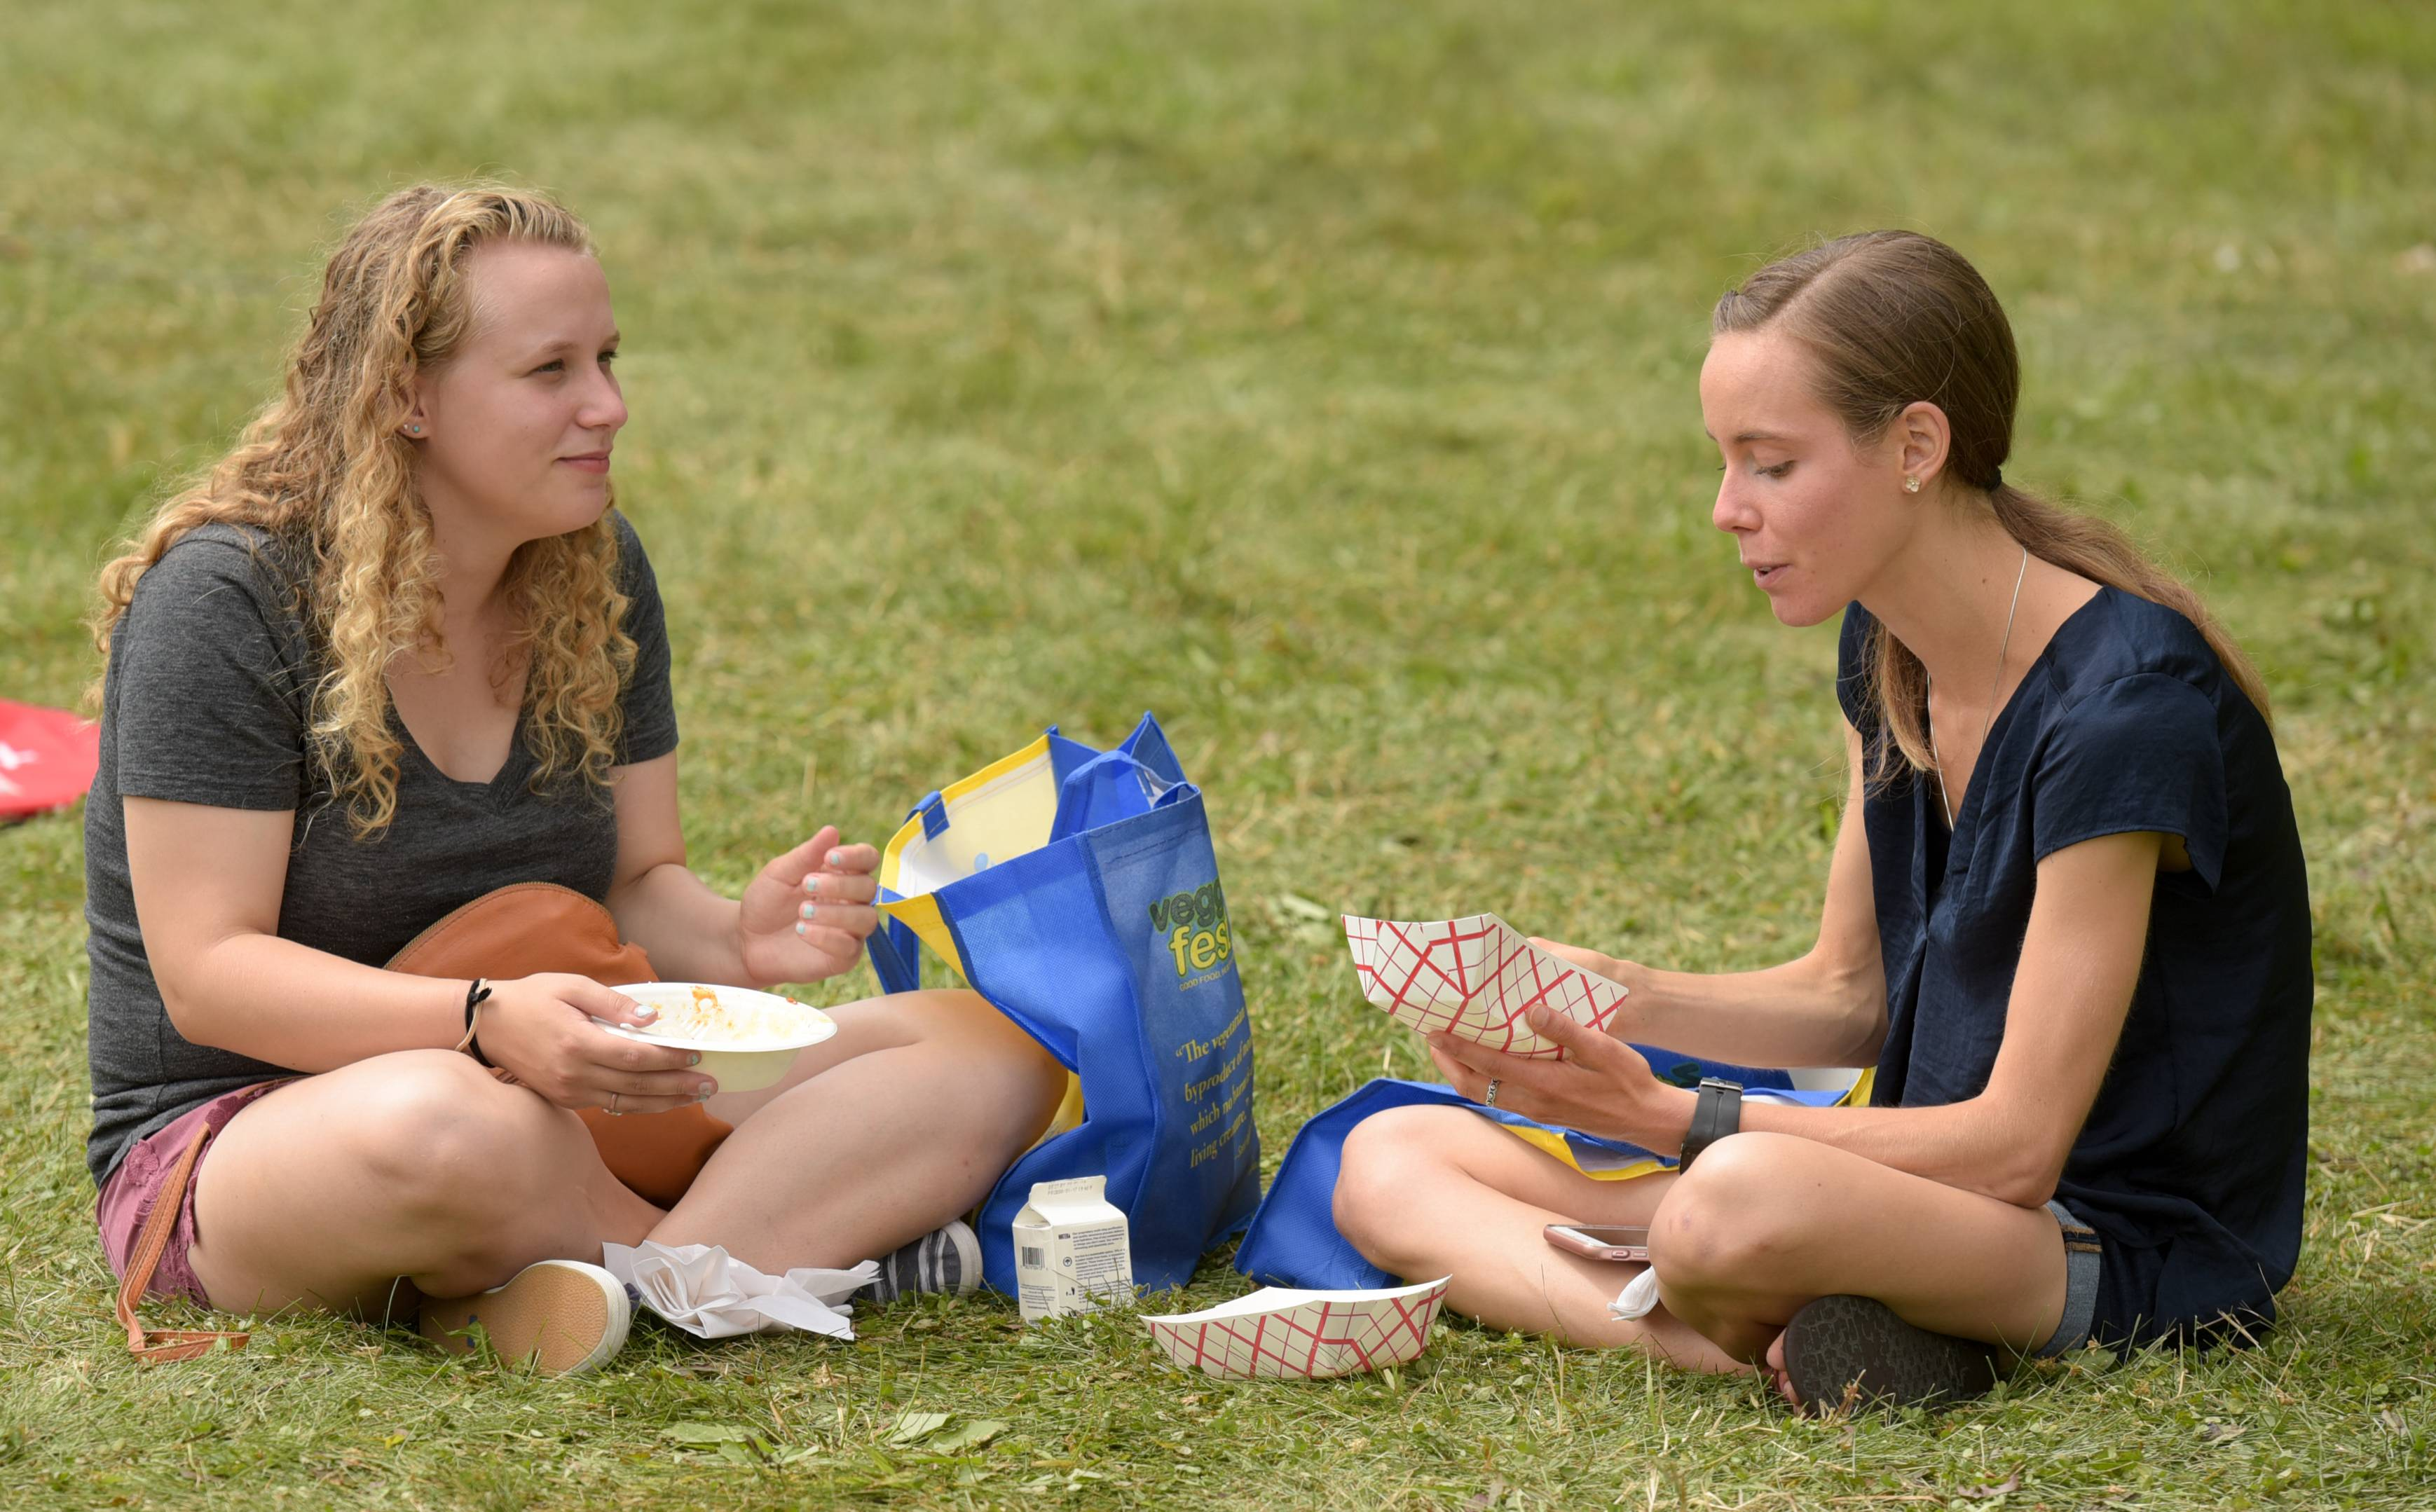 Michelle Fairbarin of New Lenox enjoys a Buddha bowl and Jenny Jess of Lansing Michigan enjoys a Thai crunch salad while at the 12th annual Veggie Fest held this year at Benedictine University in Lisle.